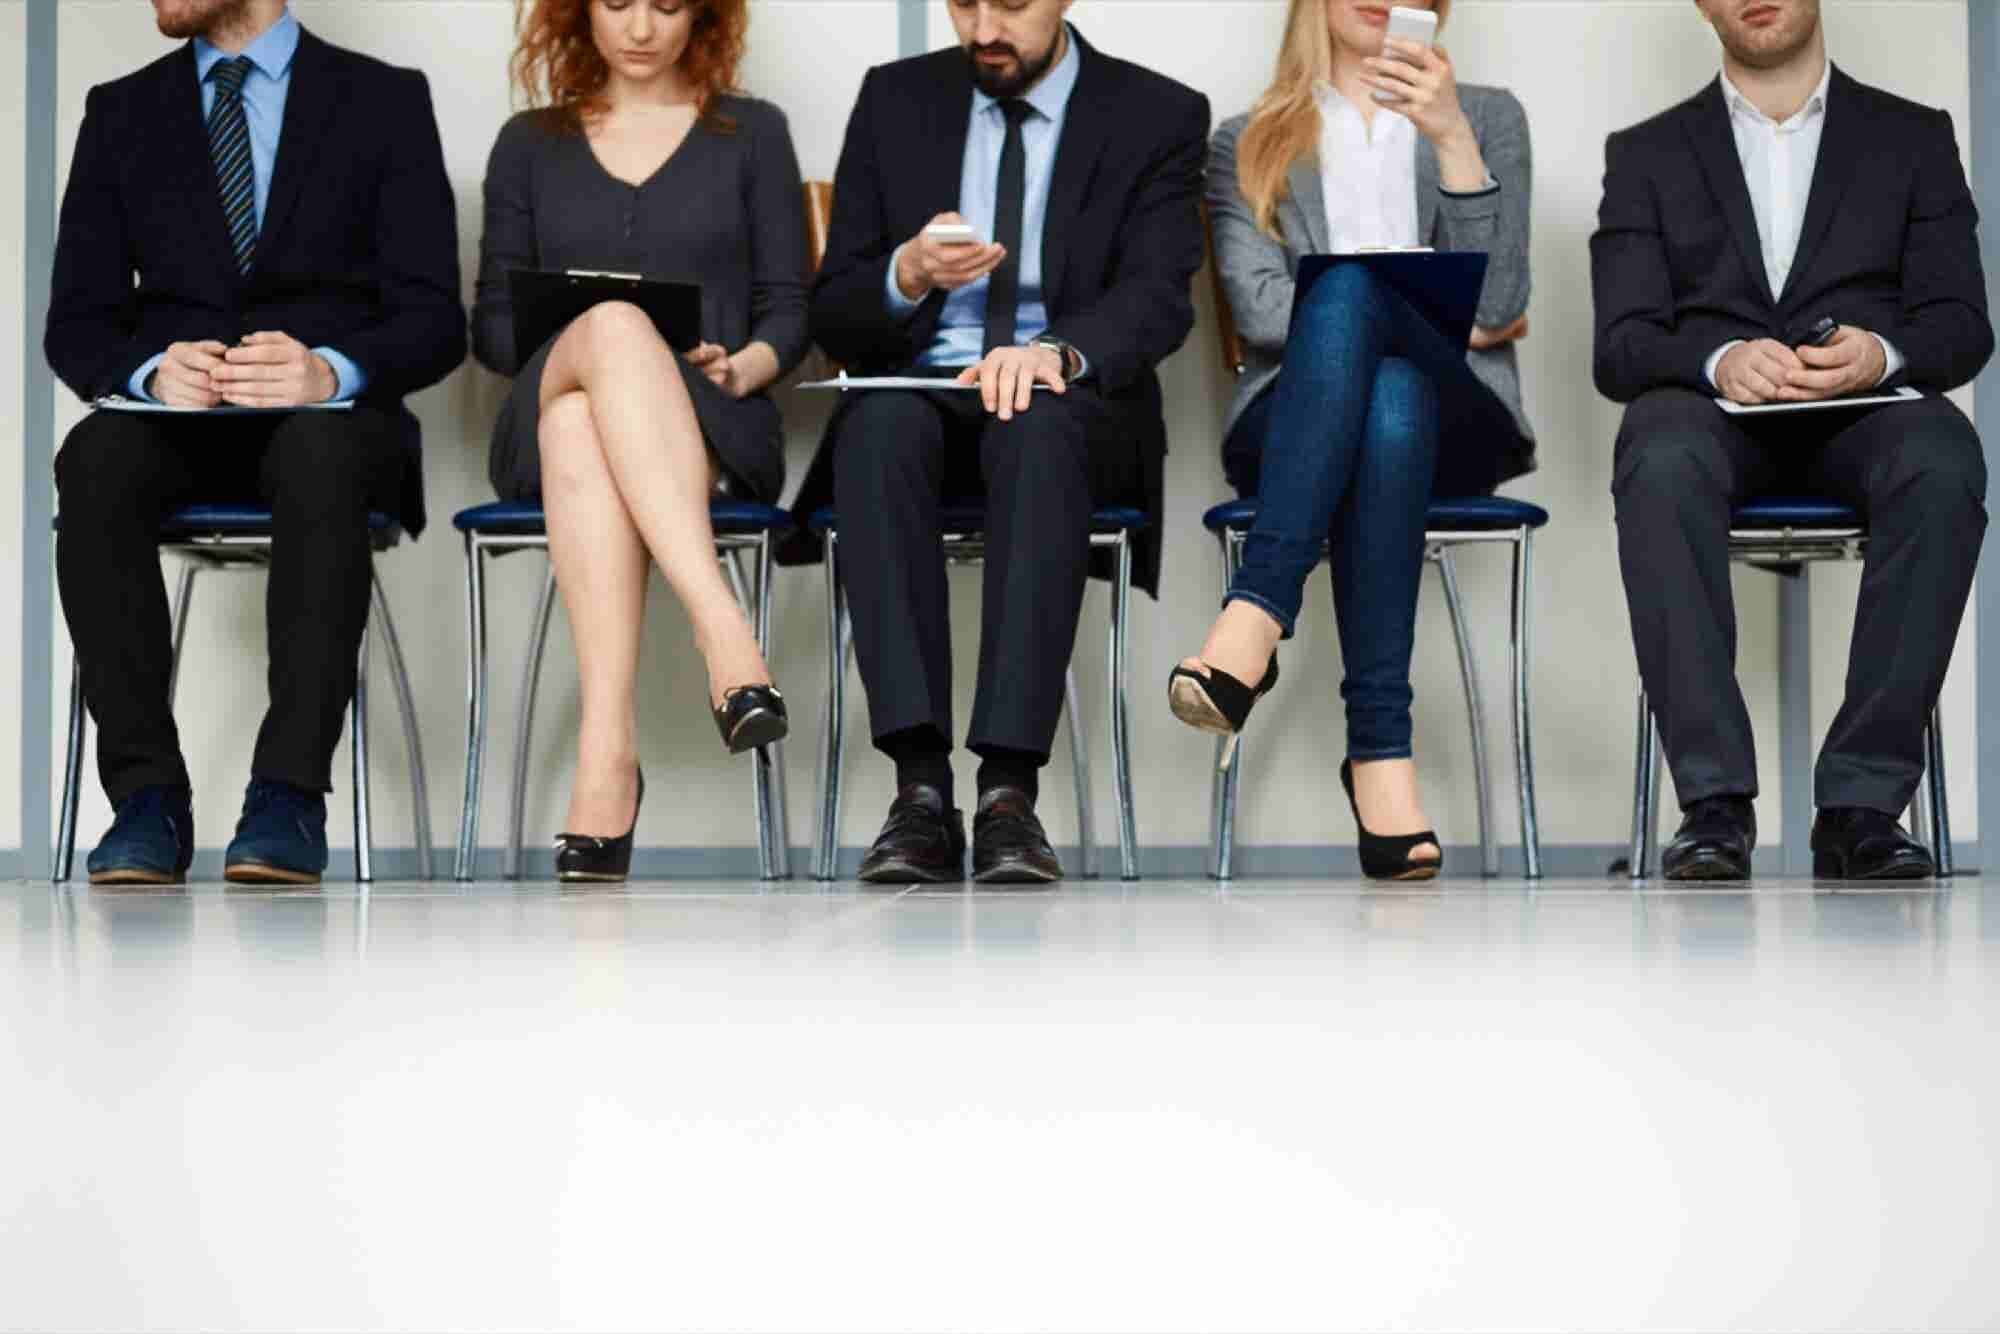 10 Ways to Gauge the Right Candidate